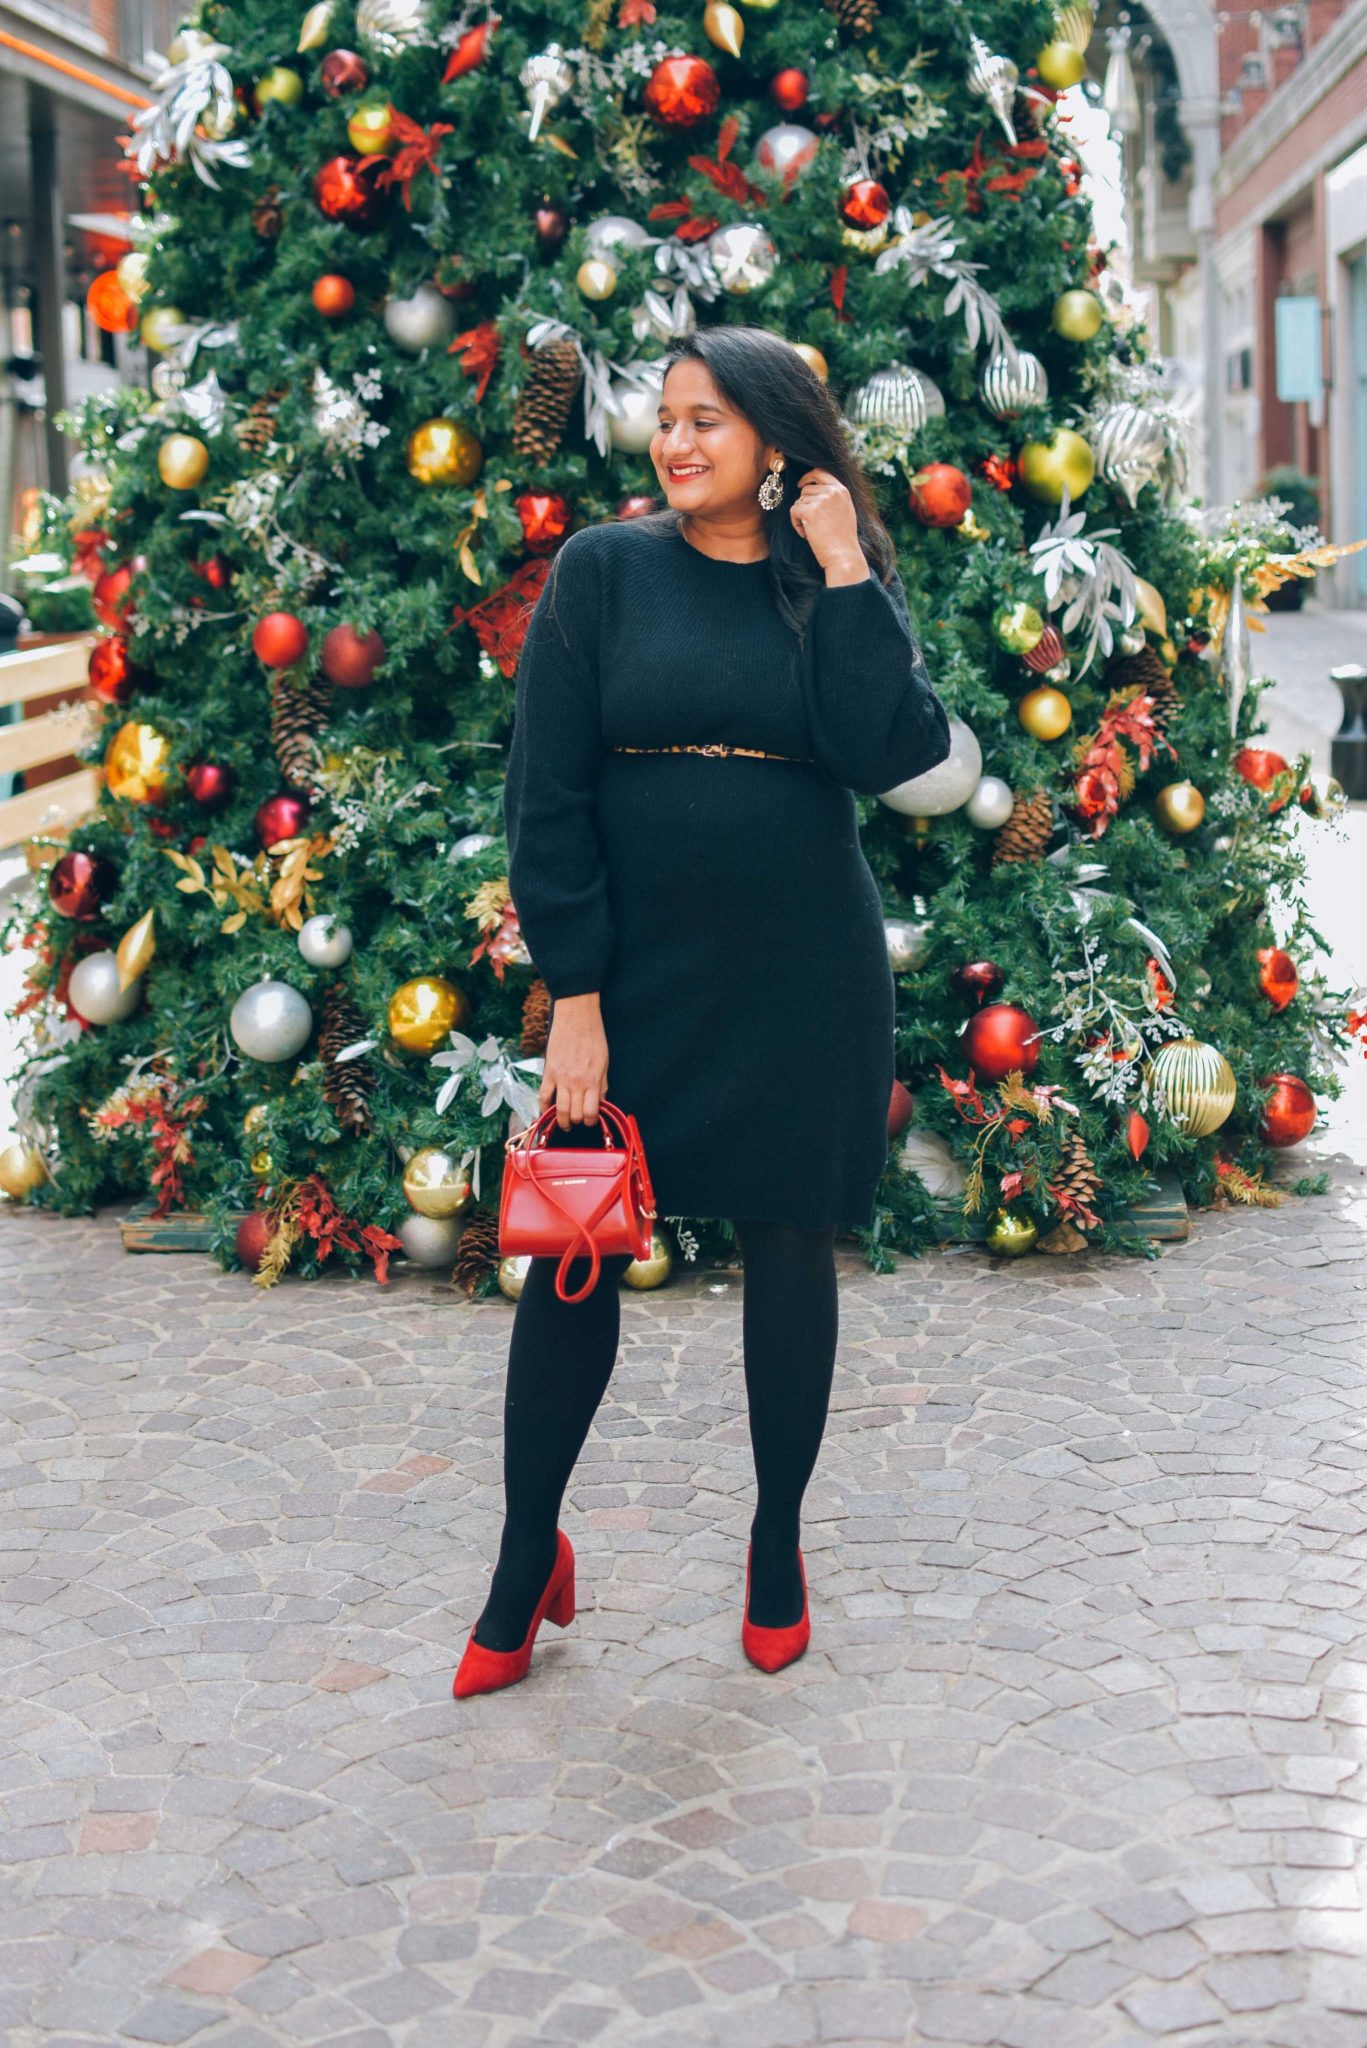 Wearing Uniqlo Baloon long sleeve sweater dress in black, Hipstick tights in black, Marc Fisher Caitlin red pumps-Holiday Outfit Ideas5 |Cute Holiday Outfit Ideas by popular Maryland modest fashion blog, Dreaming Loud: image of a woman wearing a Wearing Uniqlo ALLOON LONG-SLEEVE DRESS Sweater dress, Hipstick tights in black, Marc Fisher Caitlin red pumps, and leopard print belt.